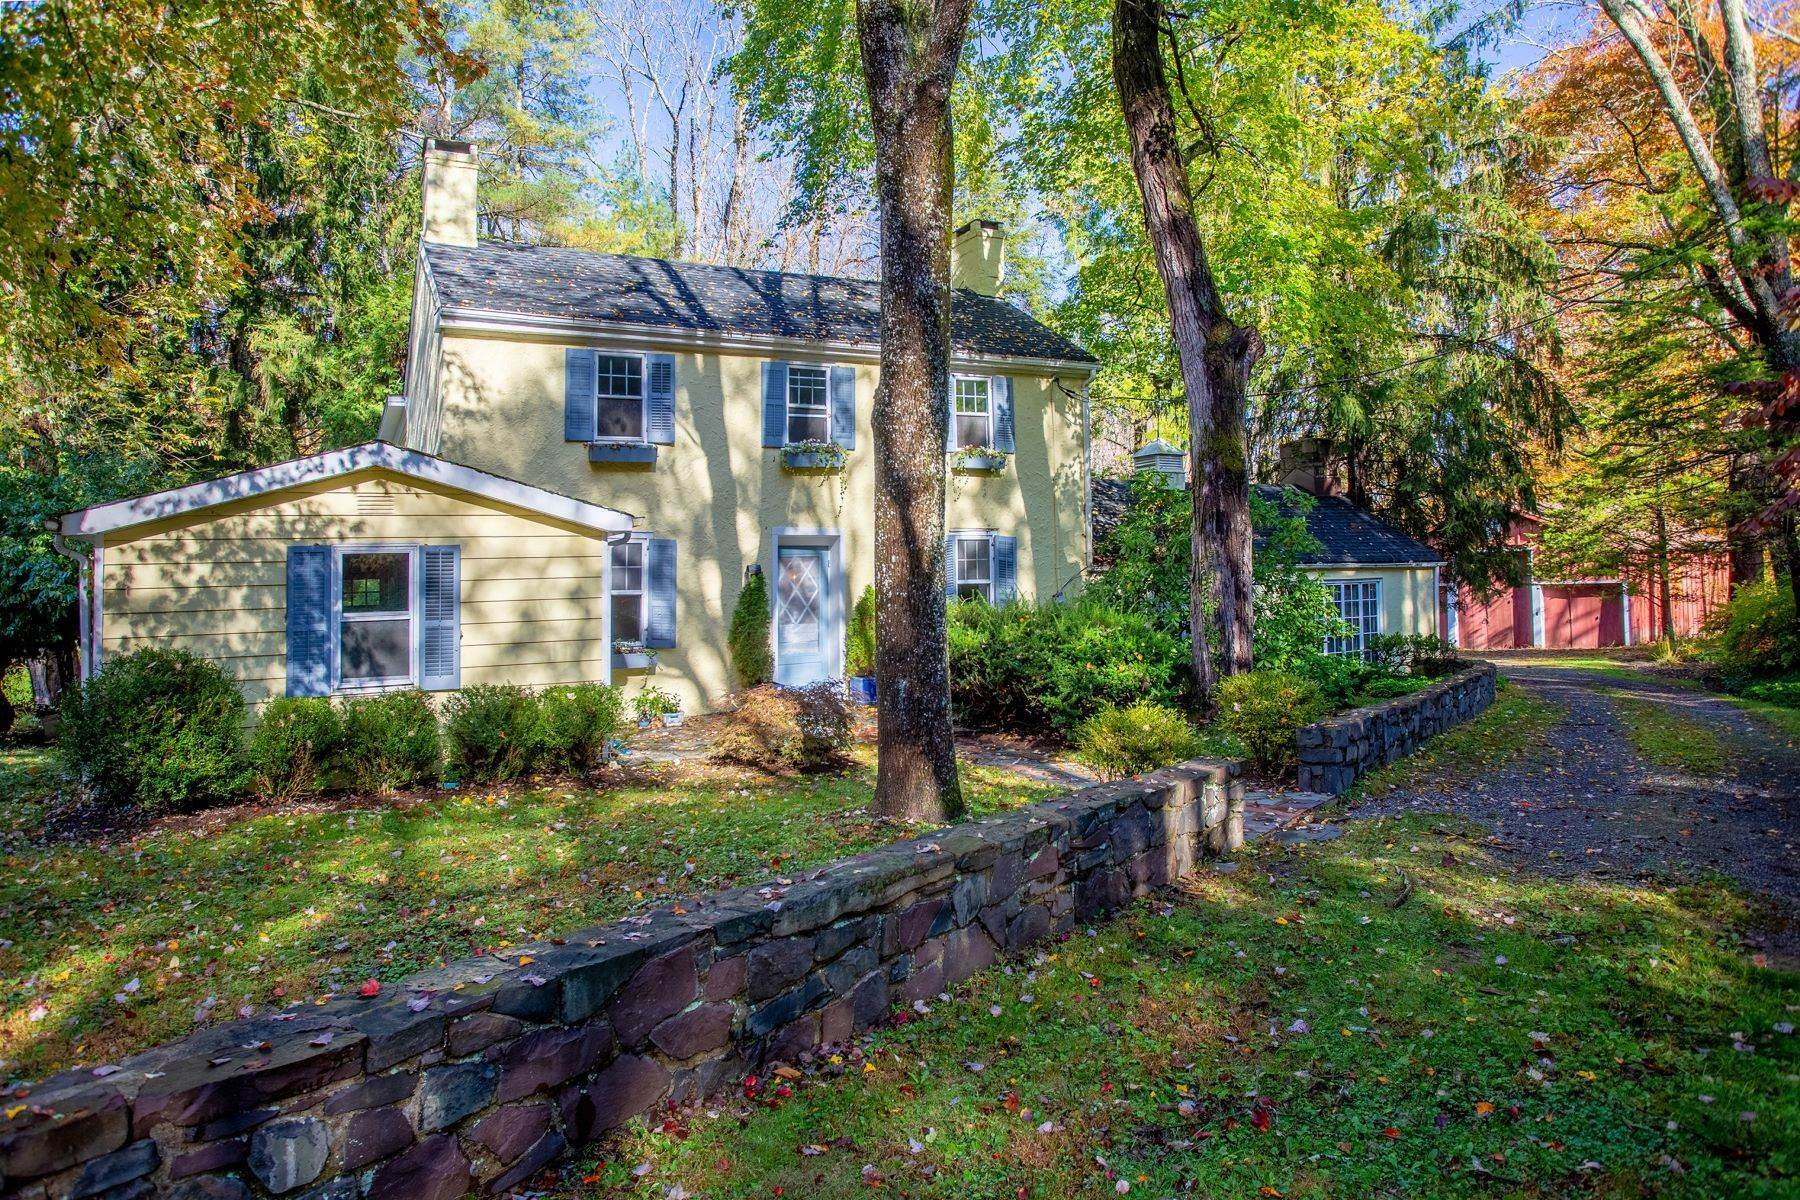 Single Family Homes for Sale at 34 MILL RD Lambertville, New Jersey 08530 United States